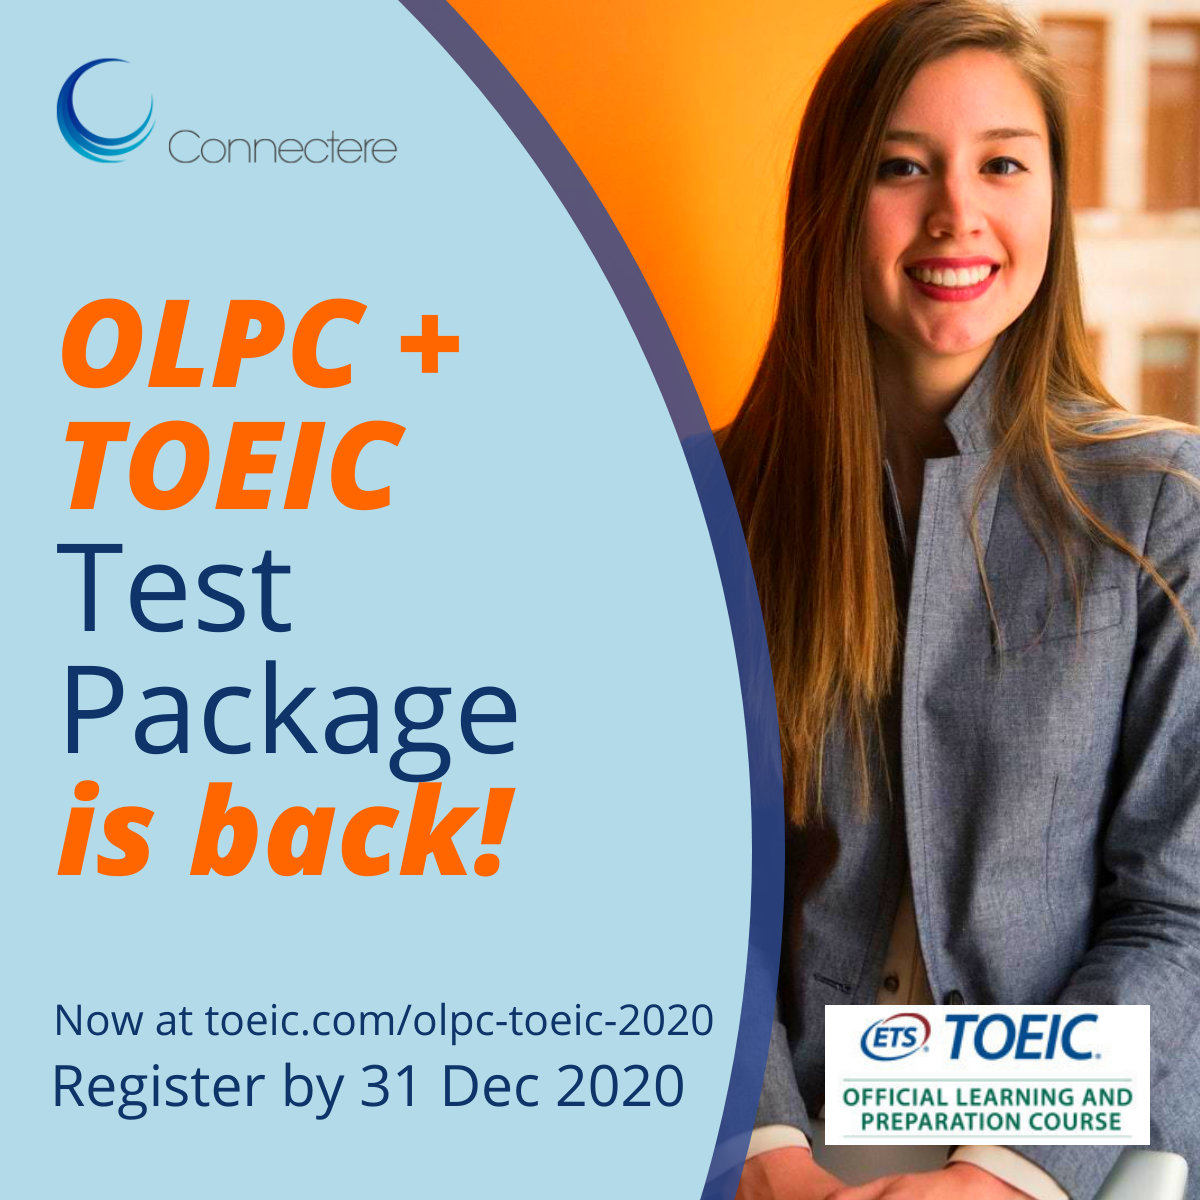 OLPC and TOEIC test package